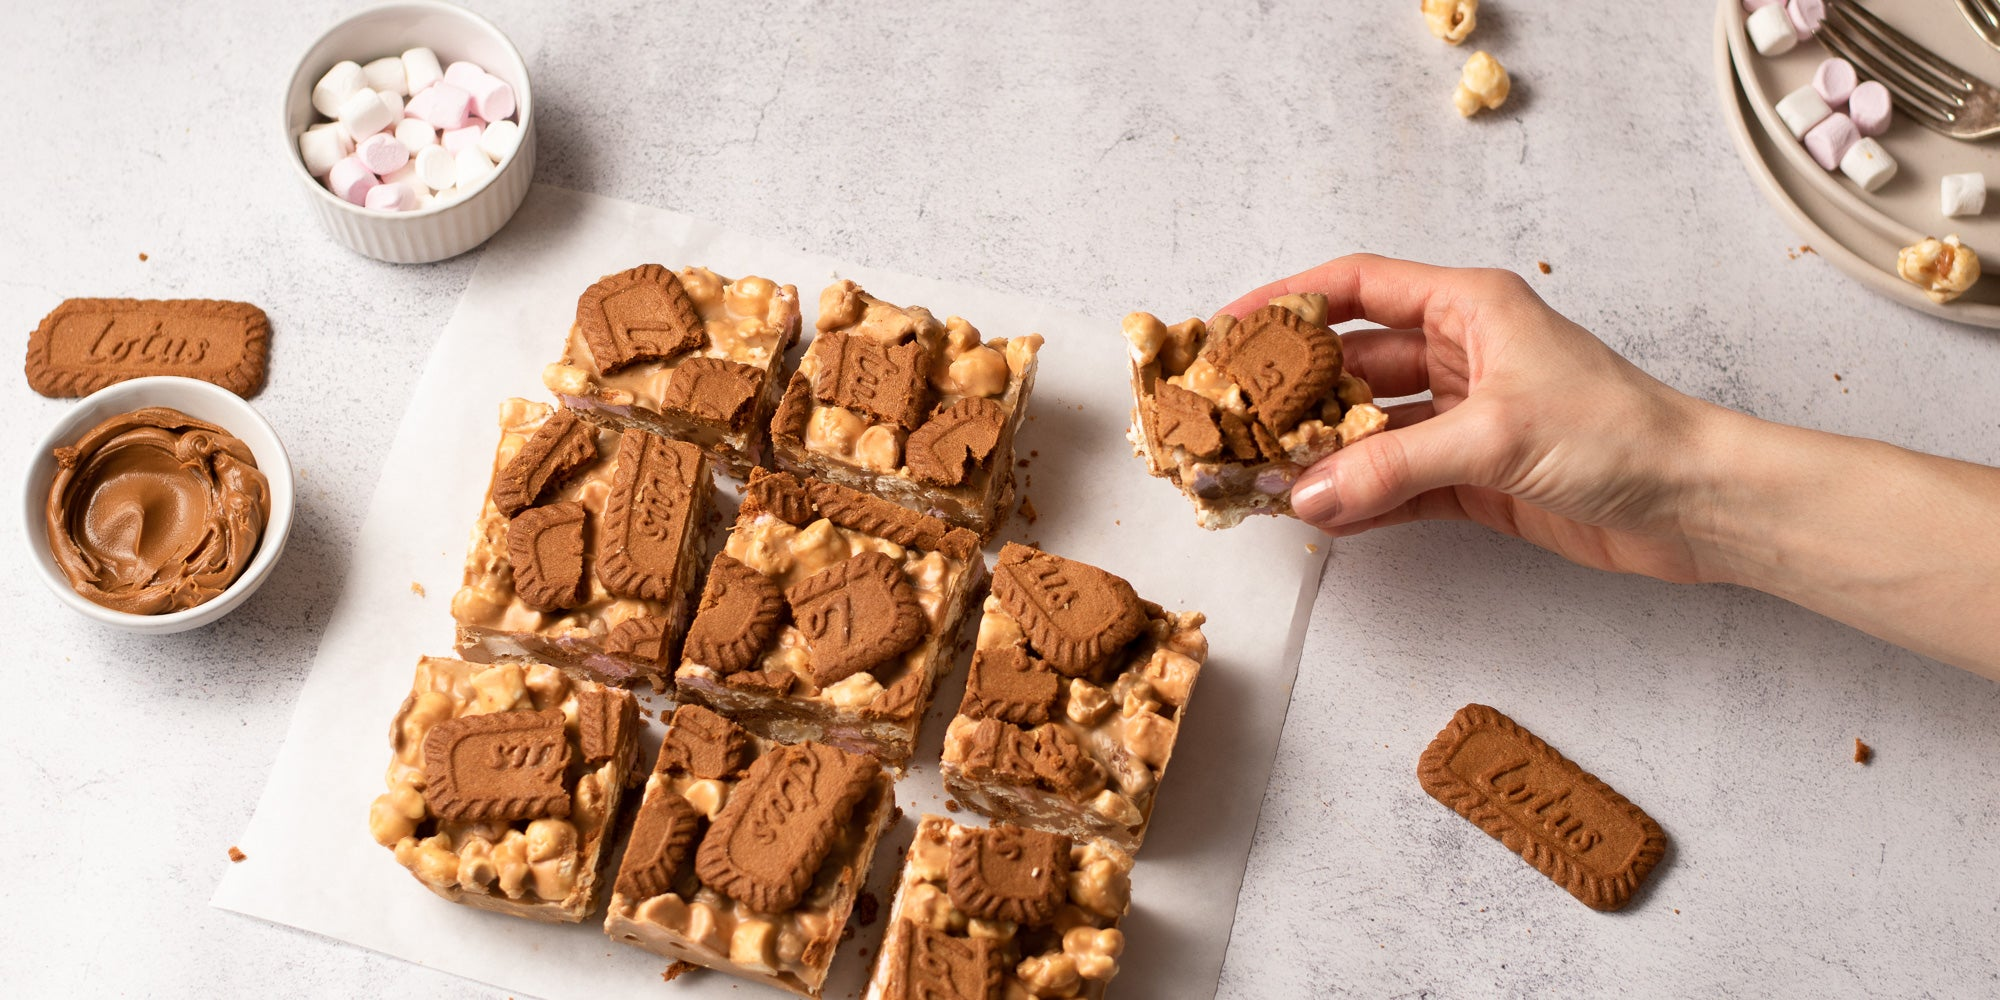 Biscoff rocky road sliced into 9 pieces with a hand taking one slice